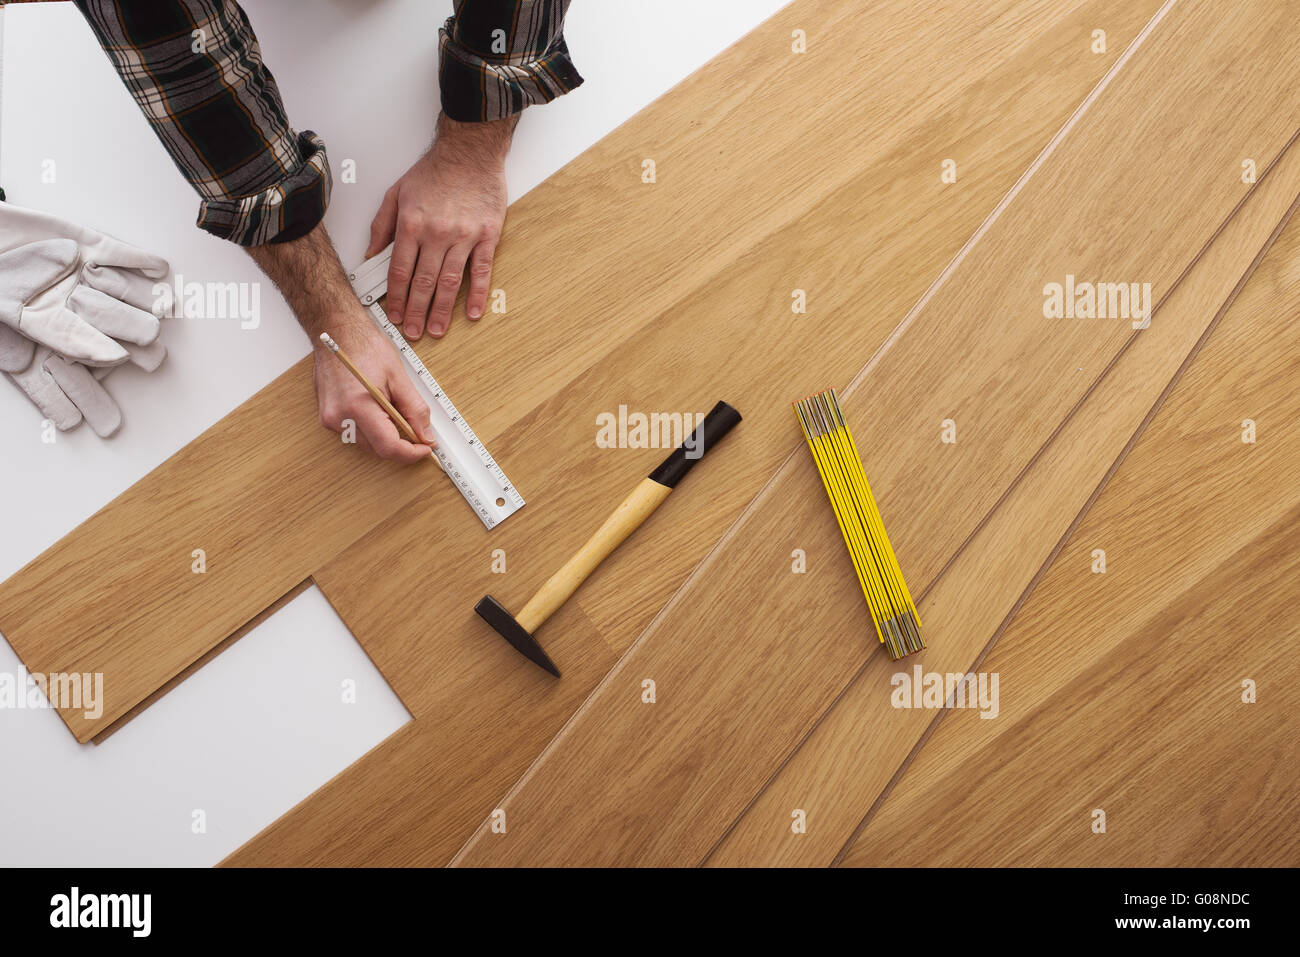 Carpenter Installing A Wooden Flooring And Measuring With A